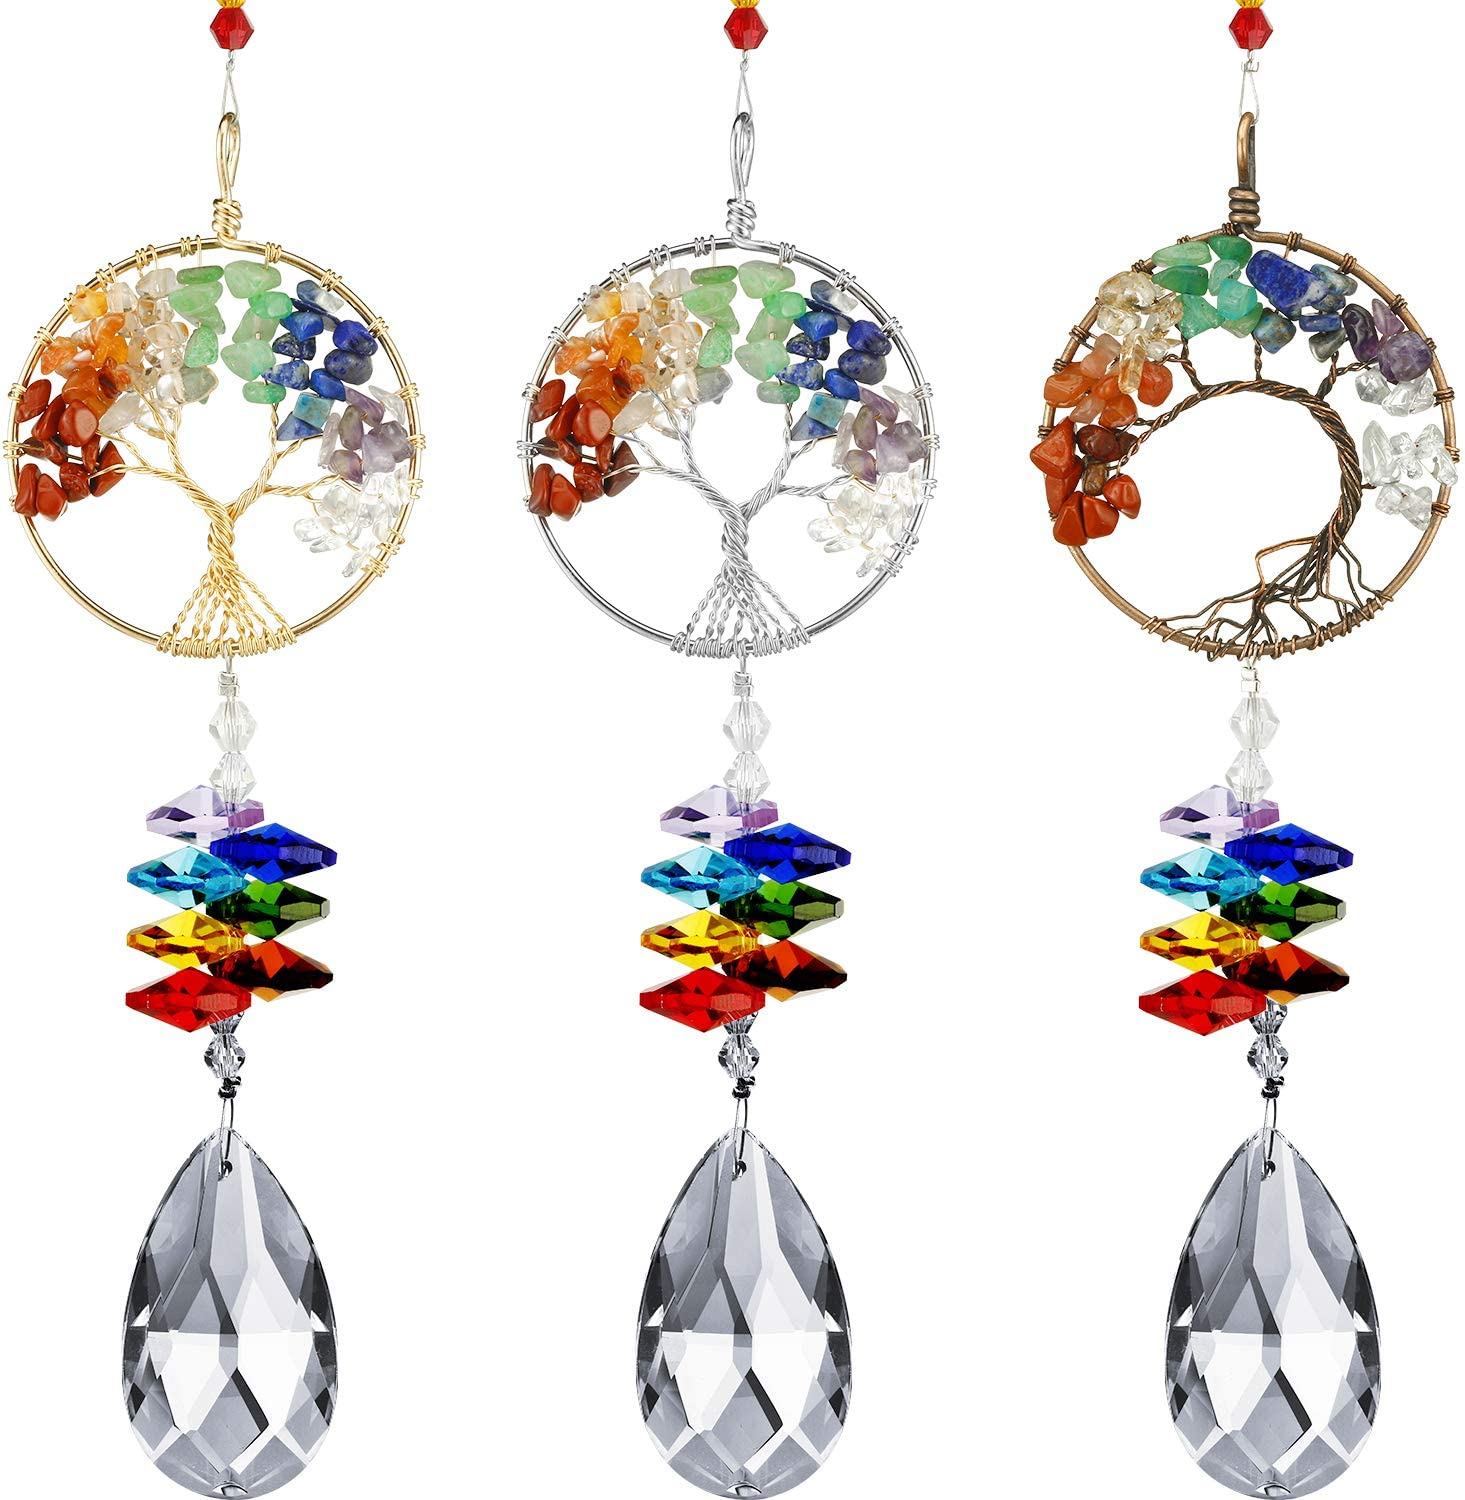 Blulu 3 Pieces Colorful Life Tree Pendant Crystal Suncatcher Wall Hanging Tree Window Prism Ornament for Room Home Office Garden Decor (Silver, Gold, Rose Gold)